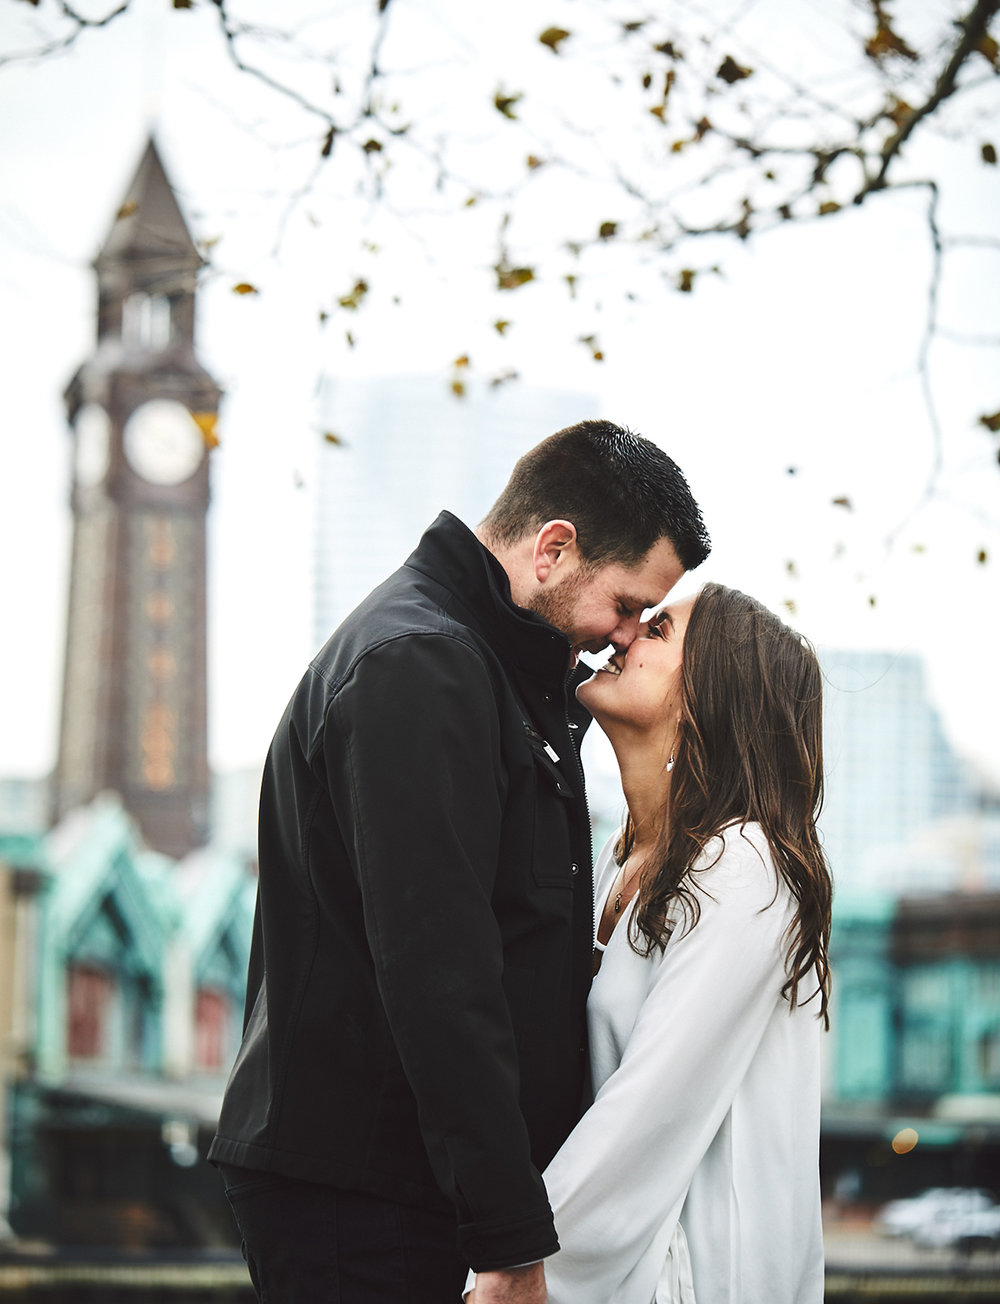 171101_HobokenEngagementPhotography_NYCEngagementPhotography_By_BriJohnsonWeddings_0021.jpg